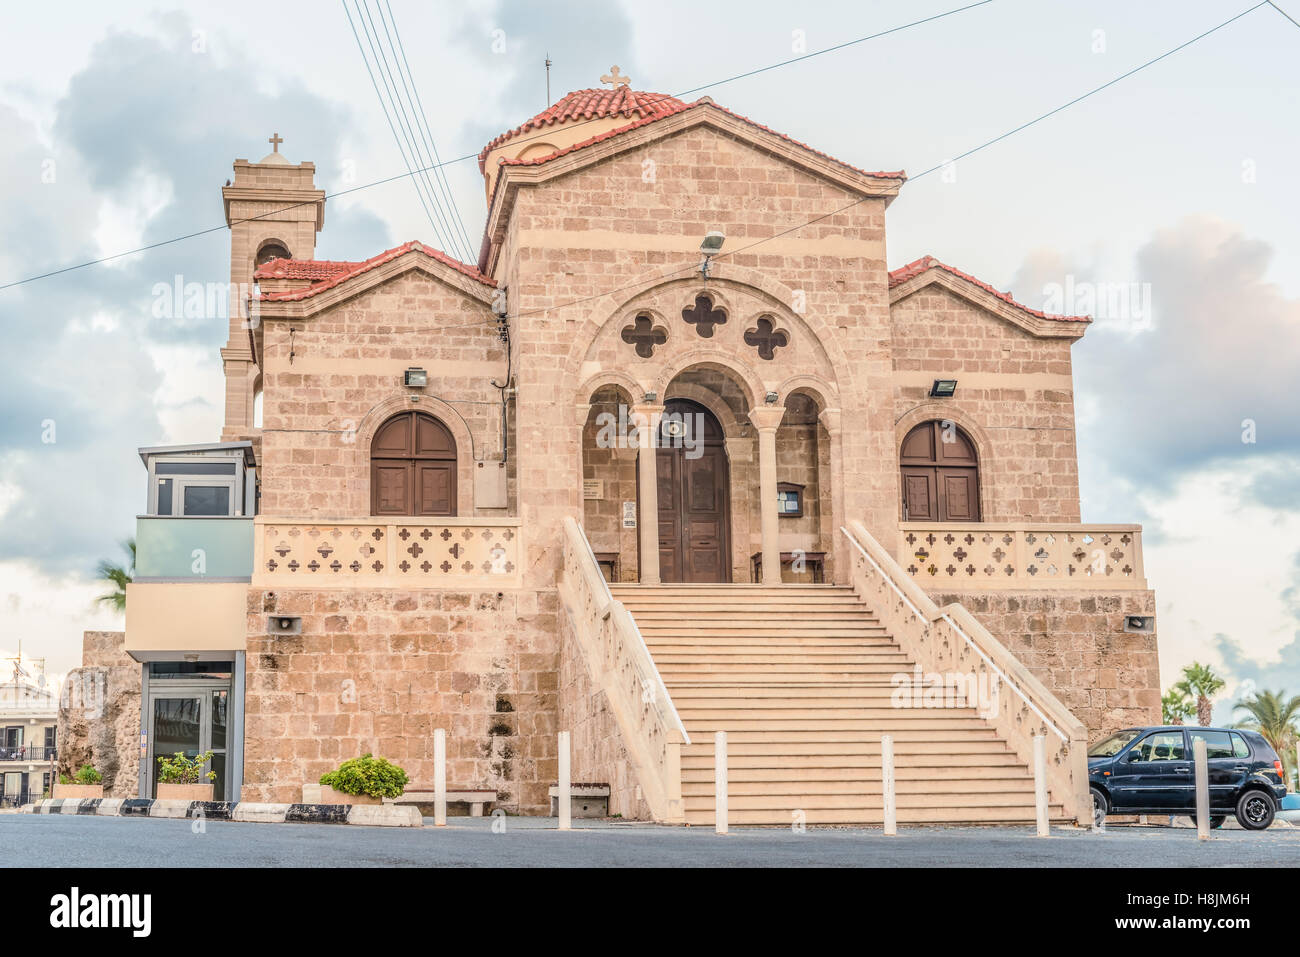 View of the Orthodox Church of Panagia Teoskepasti seventh century, Paphos, Cyprus. - Stock Image